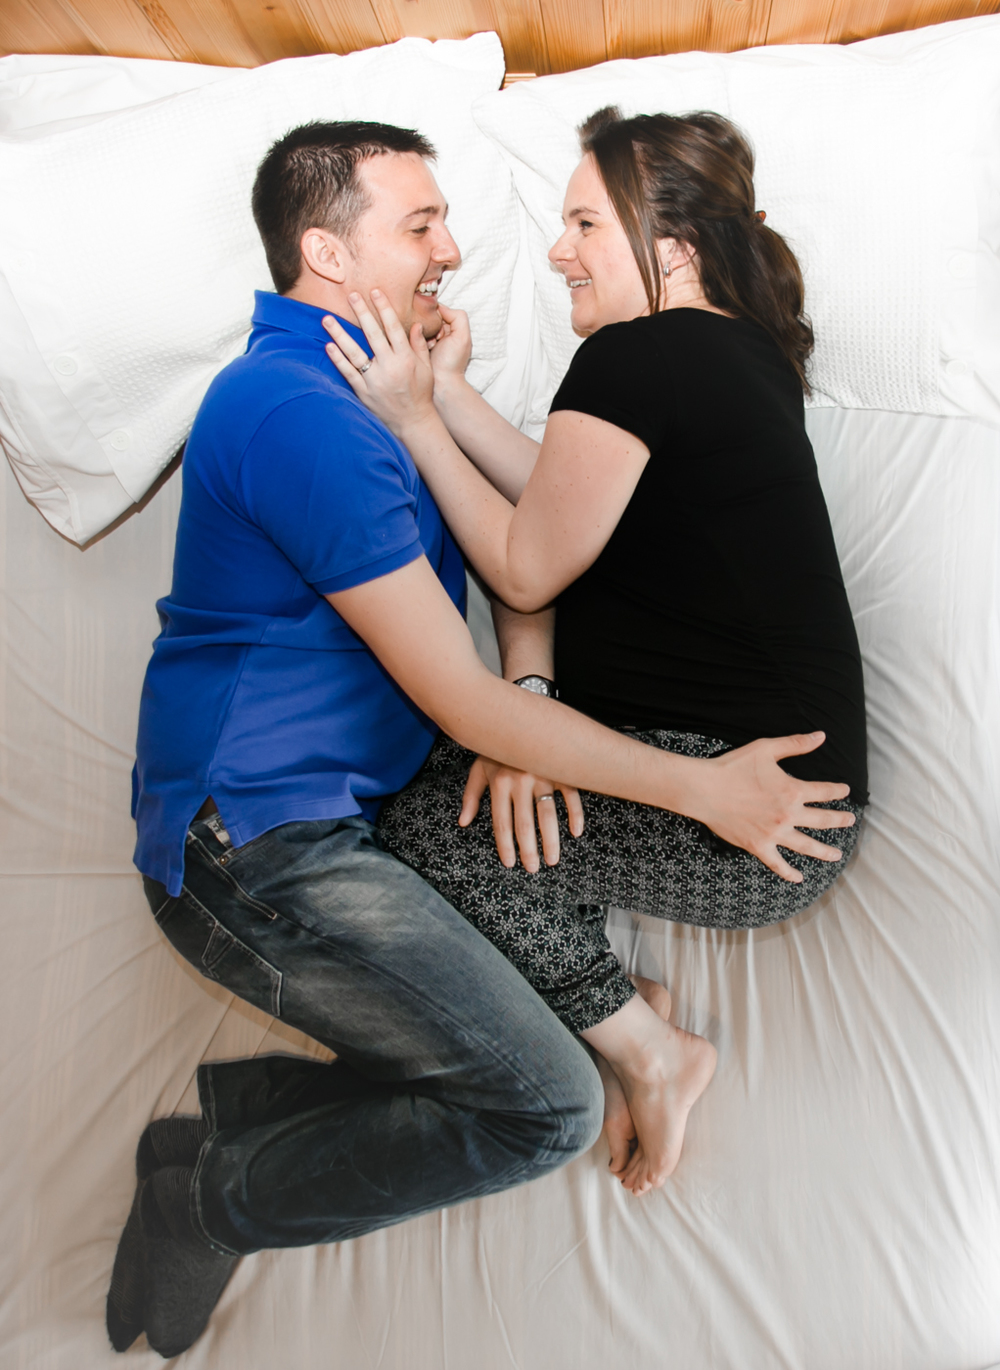 034 - Laura and Peter Fine Art Maternity Photography by Pamela and Mark Pugh - www.markpugh.com - Do NOT edit this image without consent -0105.JPG